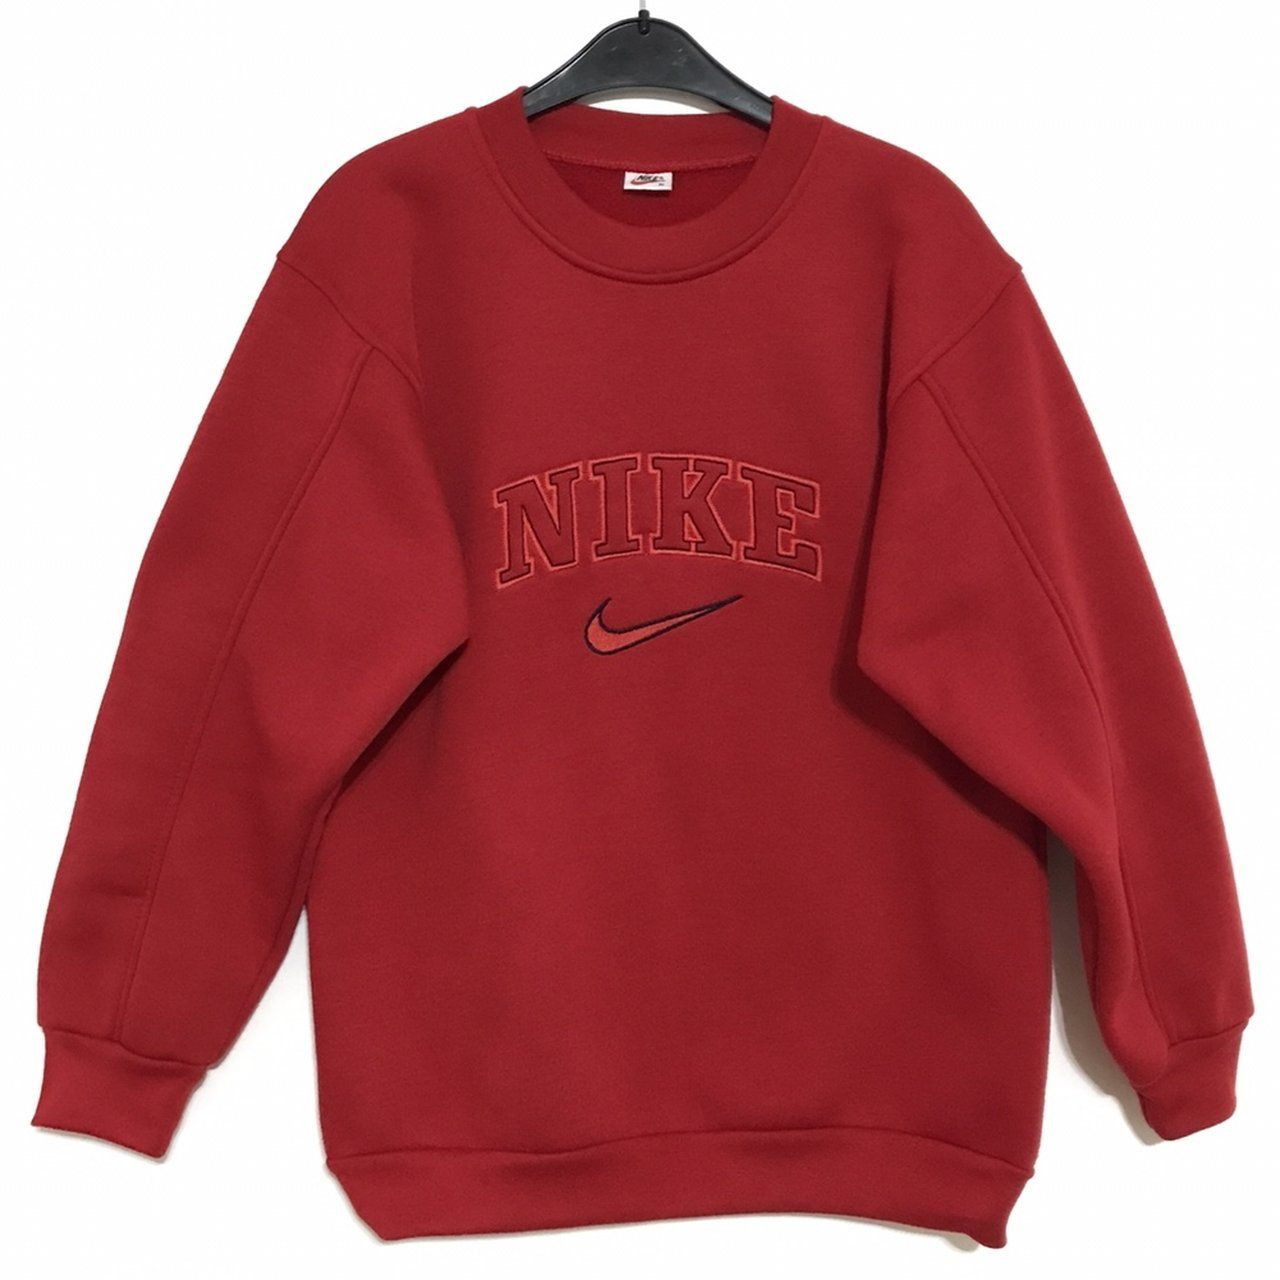 Vintage Nike Sweatshirt Size M Great Condition To Pit To To Depop Vintage Nike Sweatshirt Vintage Hoodies Retro Outfits